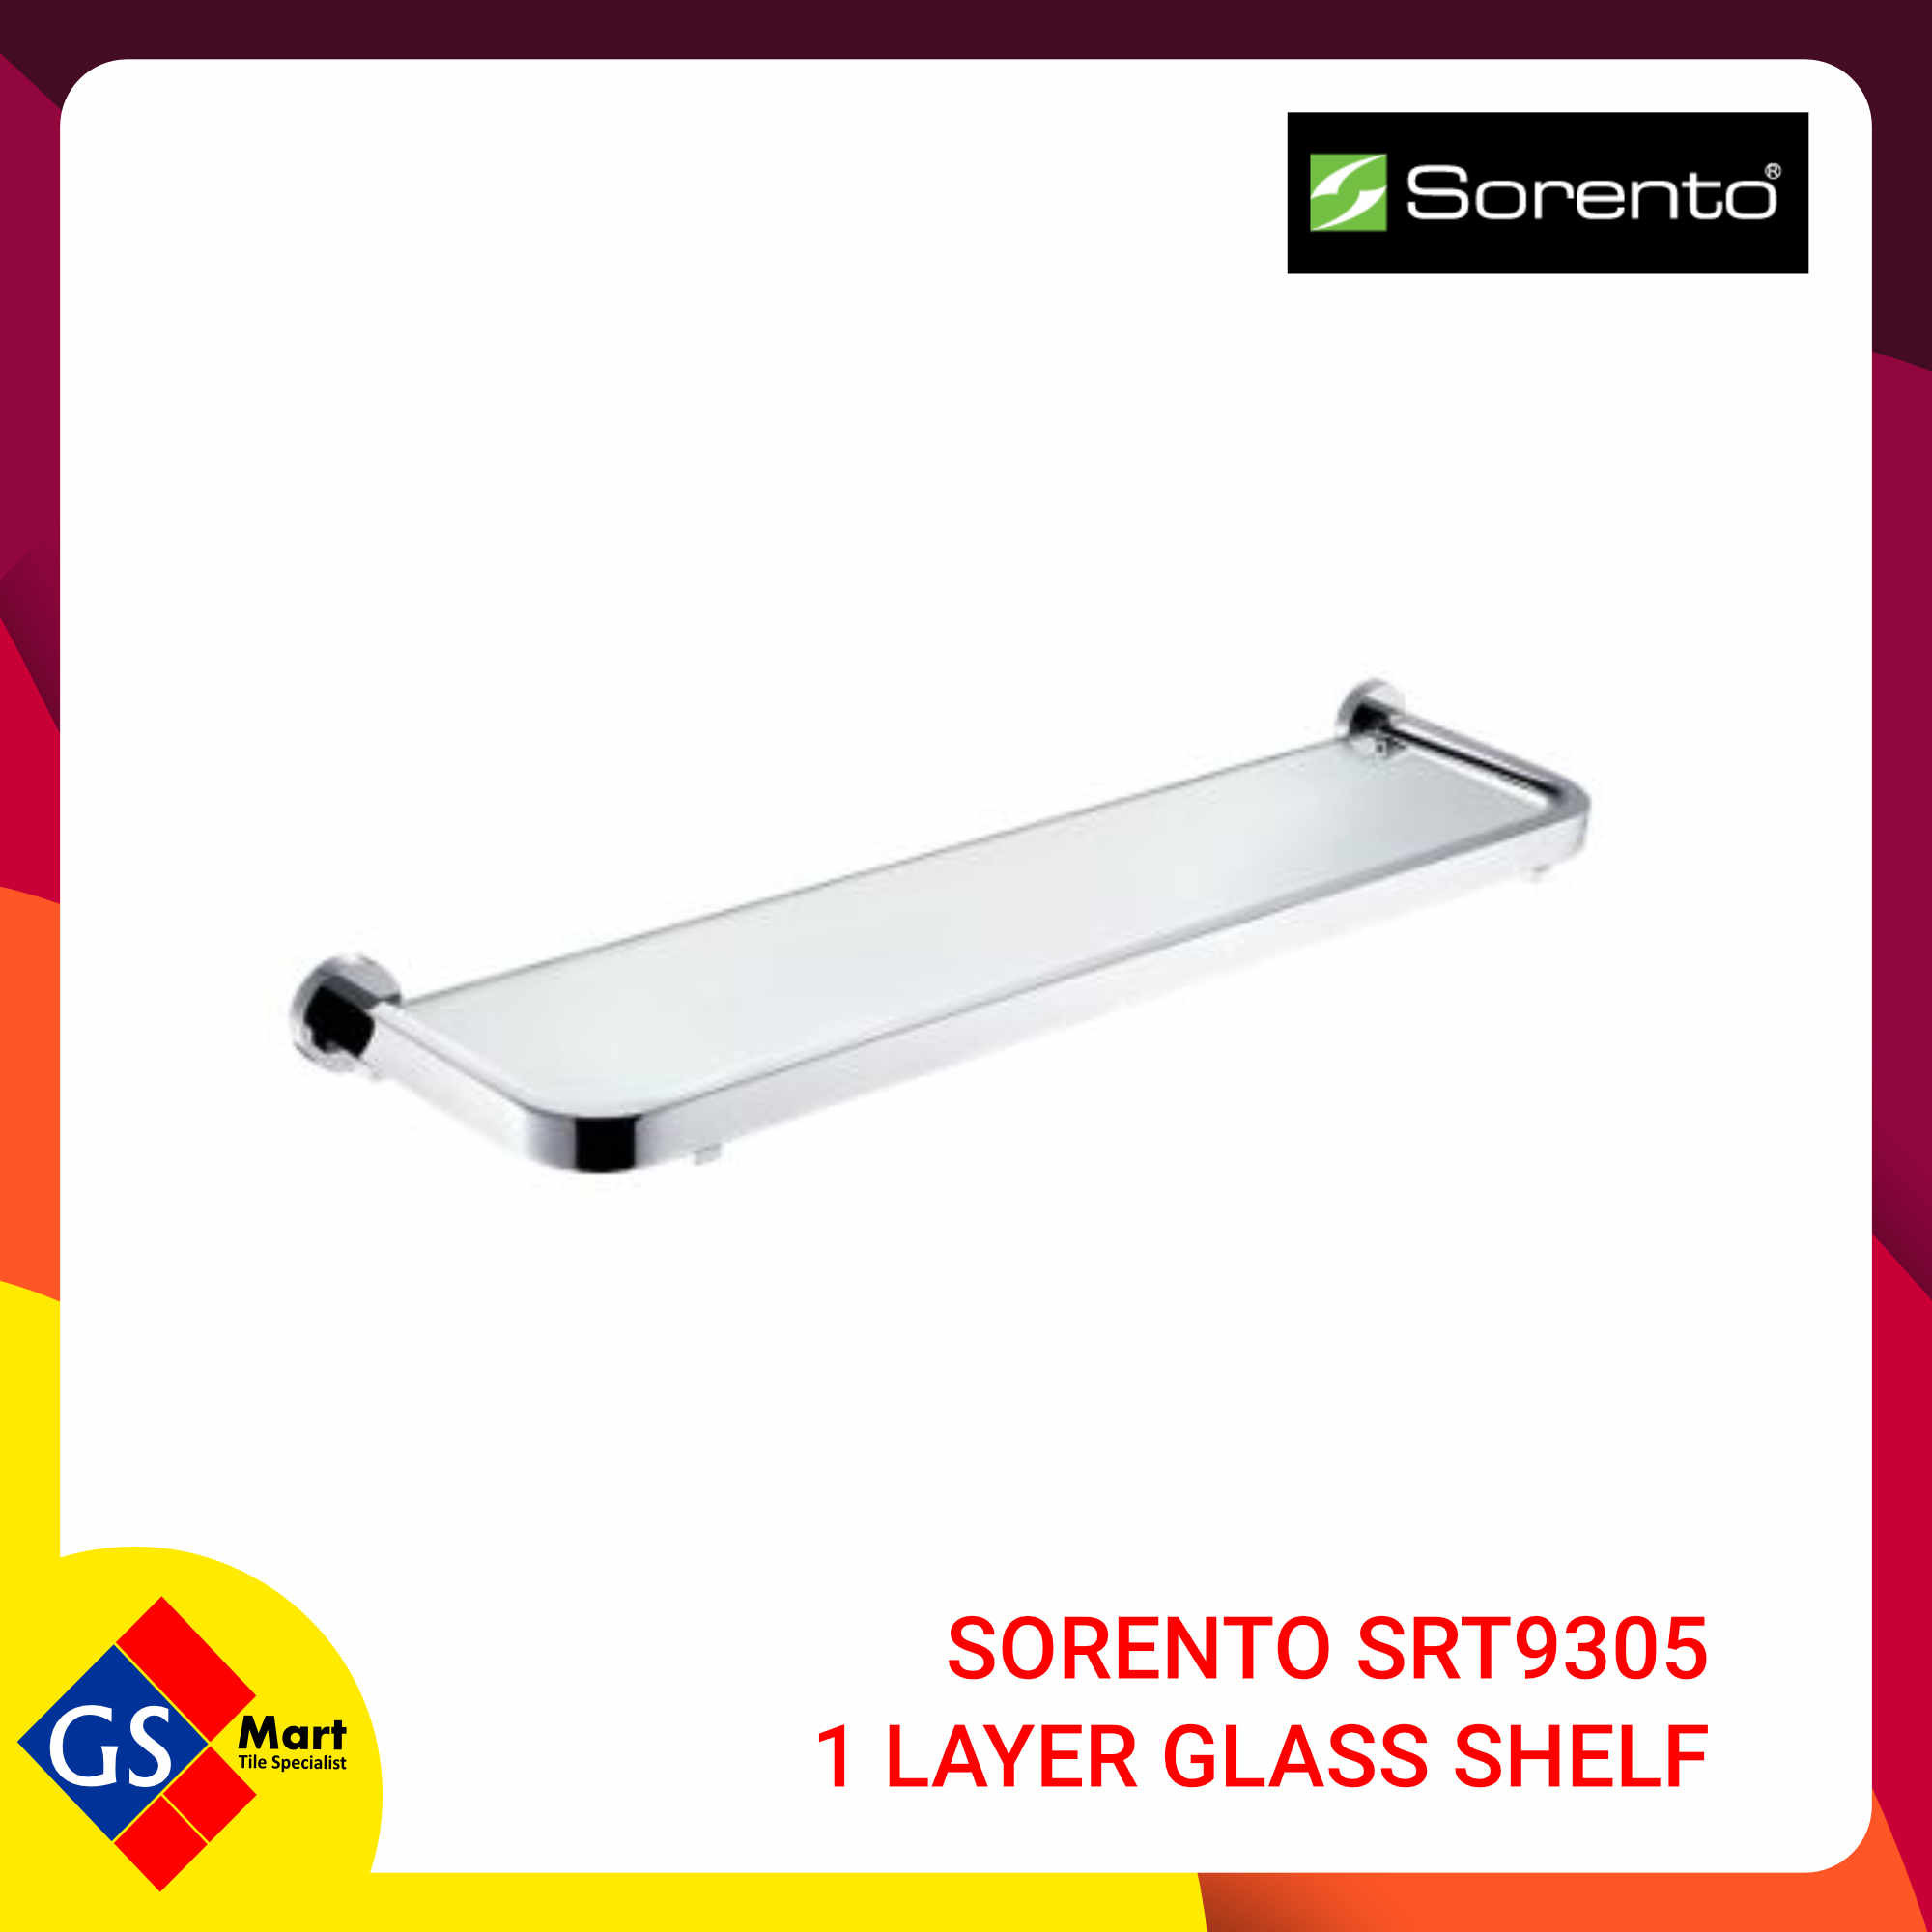 image of SORENTO SRT9305 1 LAYER GLASS SHELF